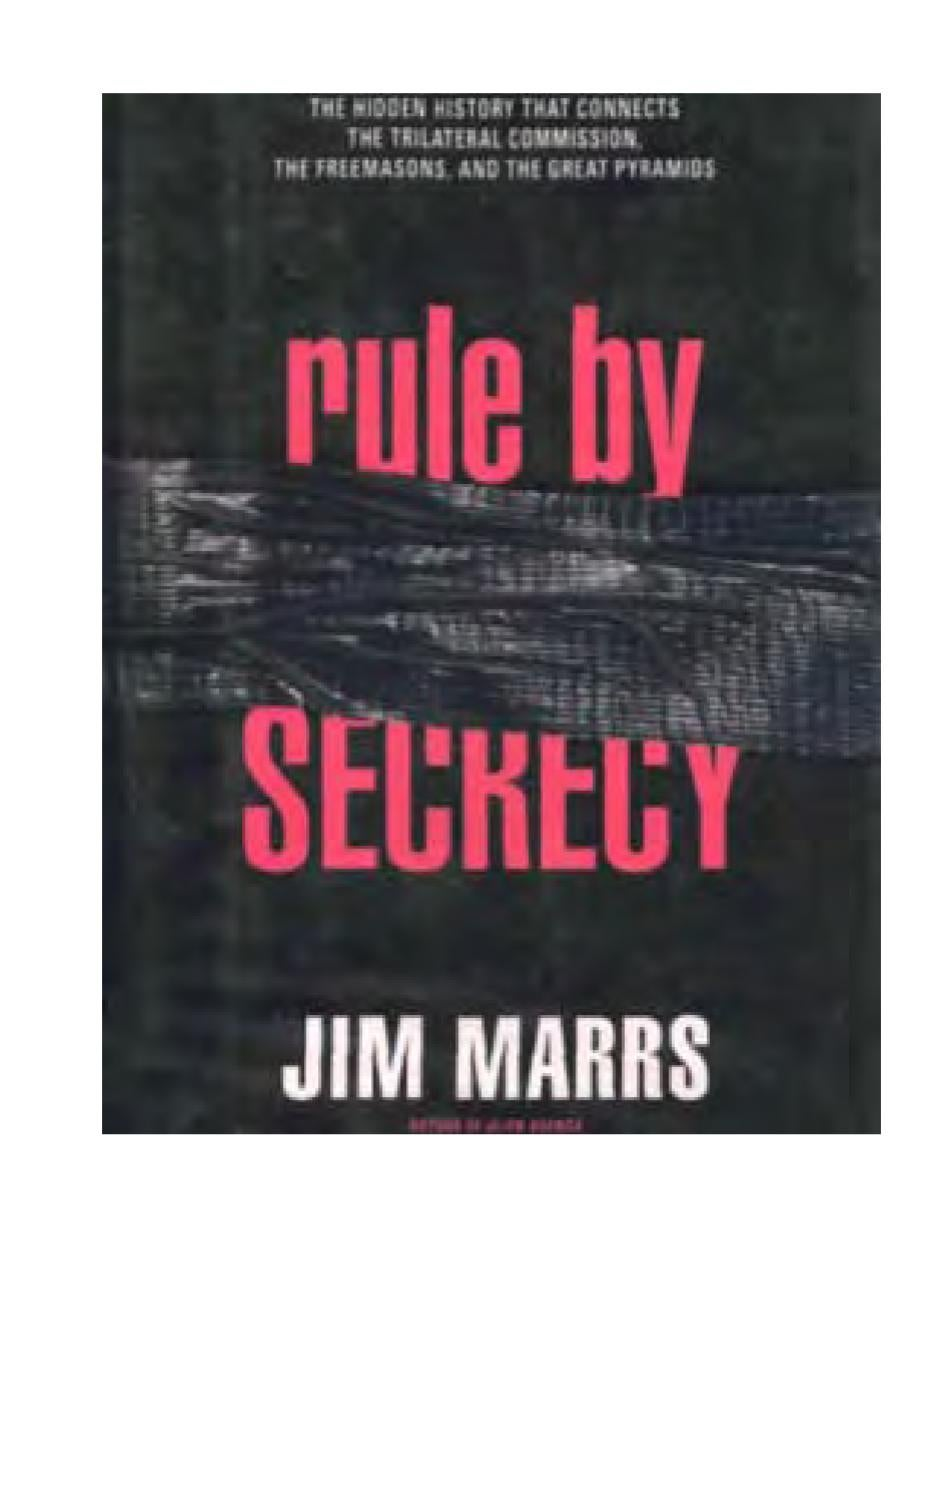 Rule by secrecy by jim marrs by jeremy nelson issuu fandeluxe Image collections